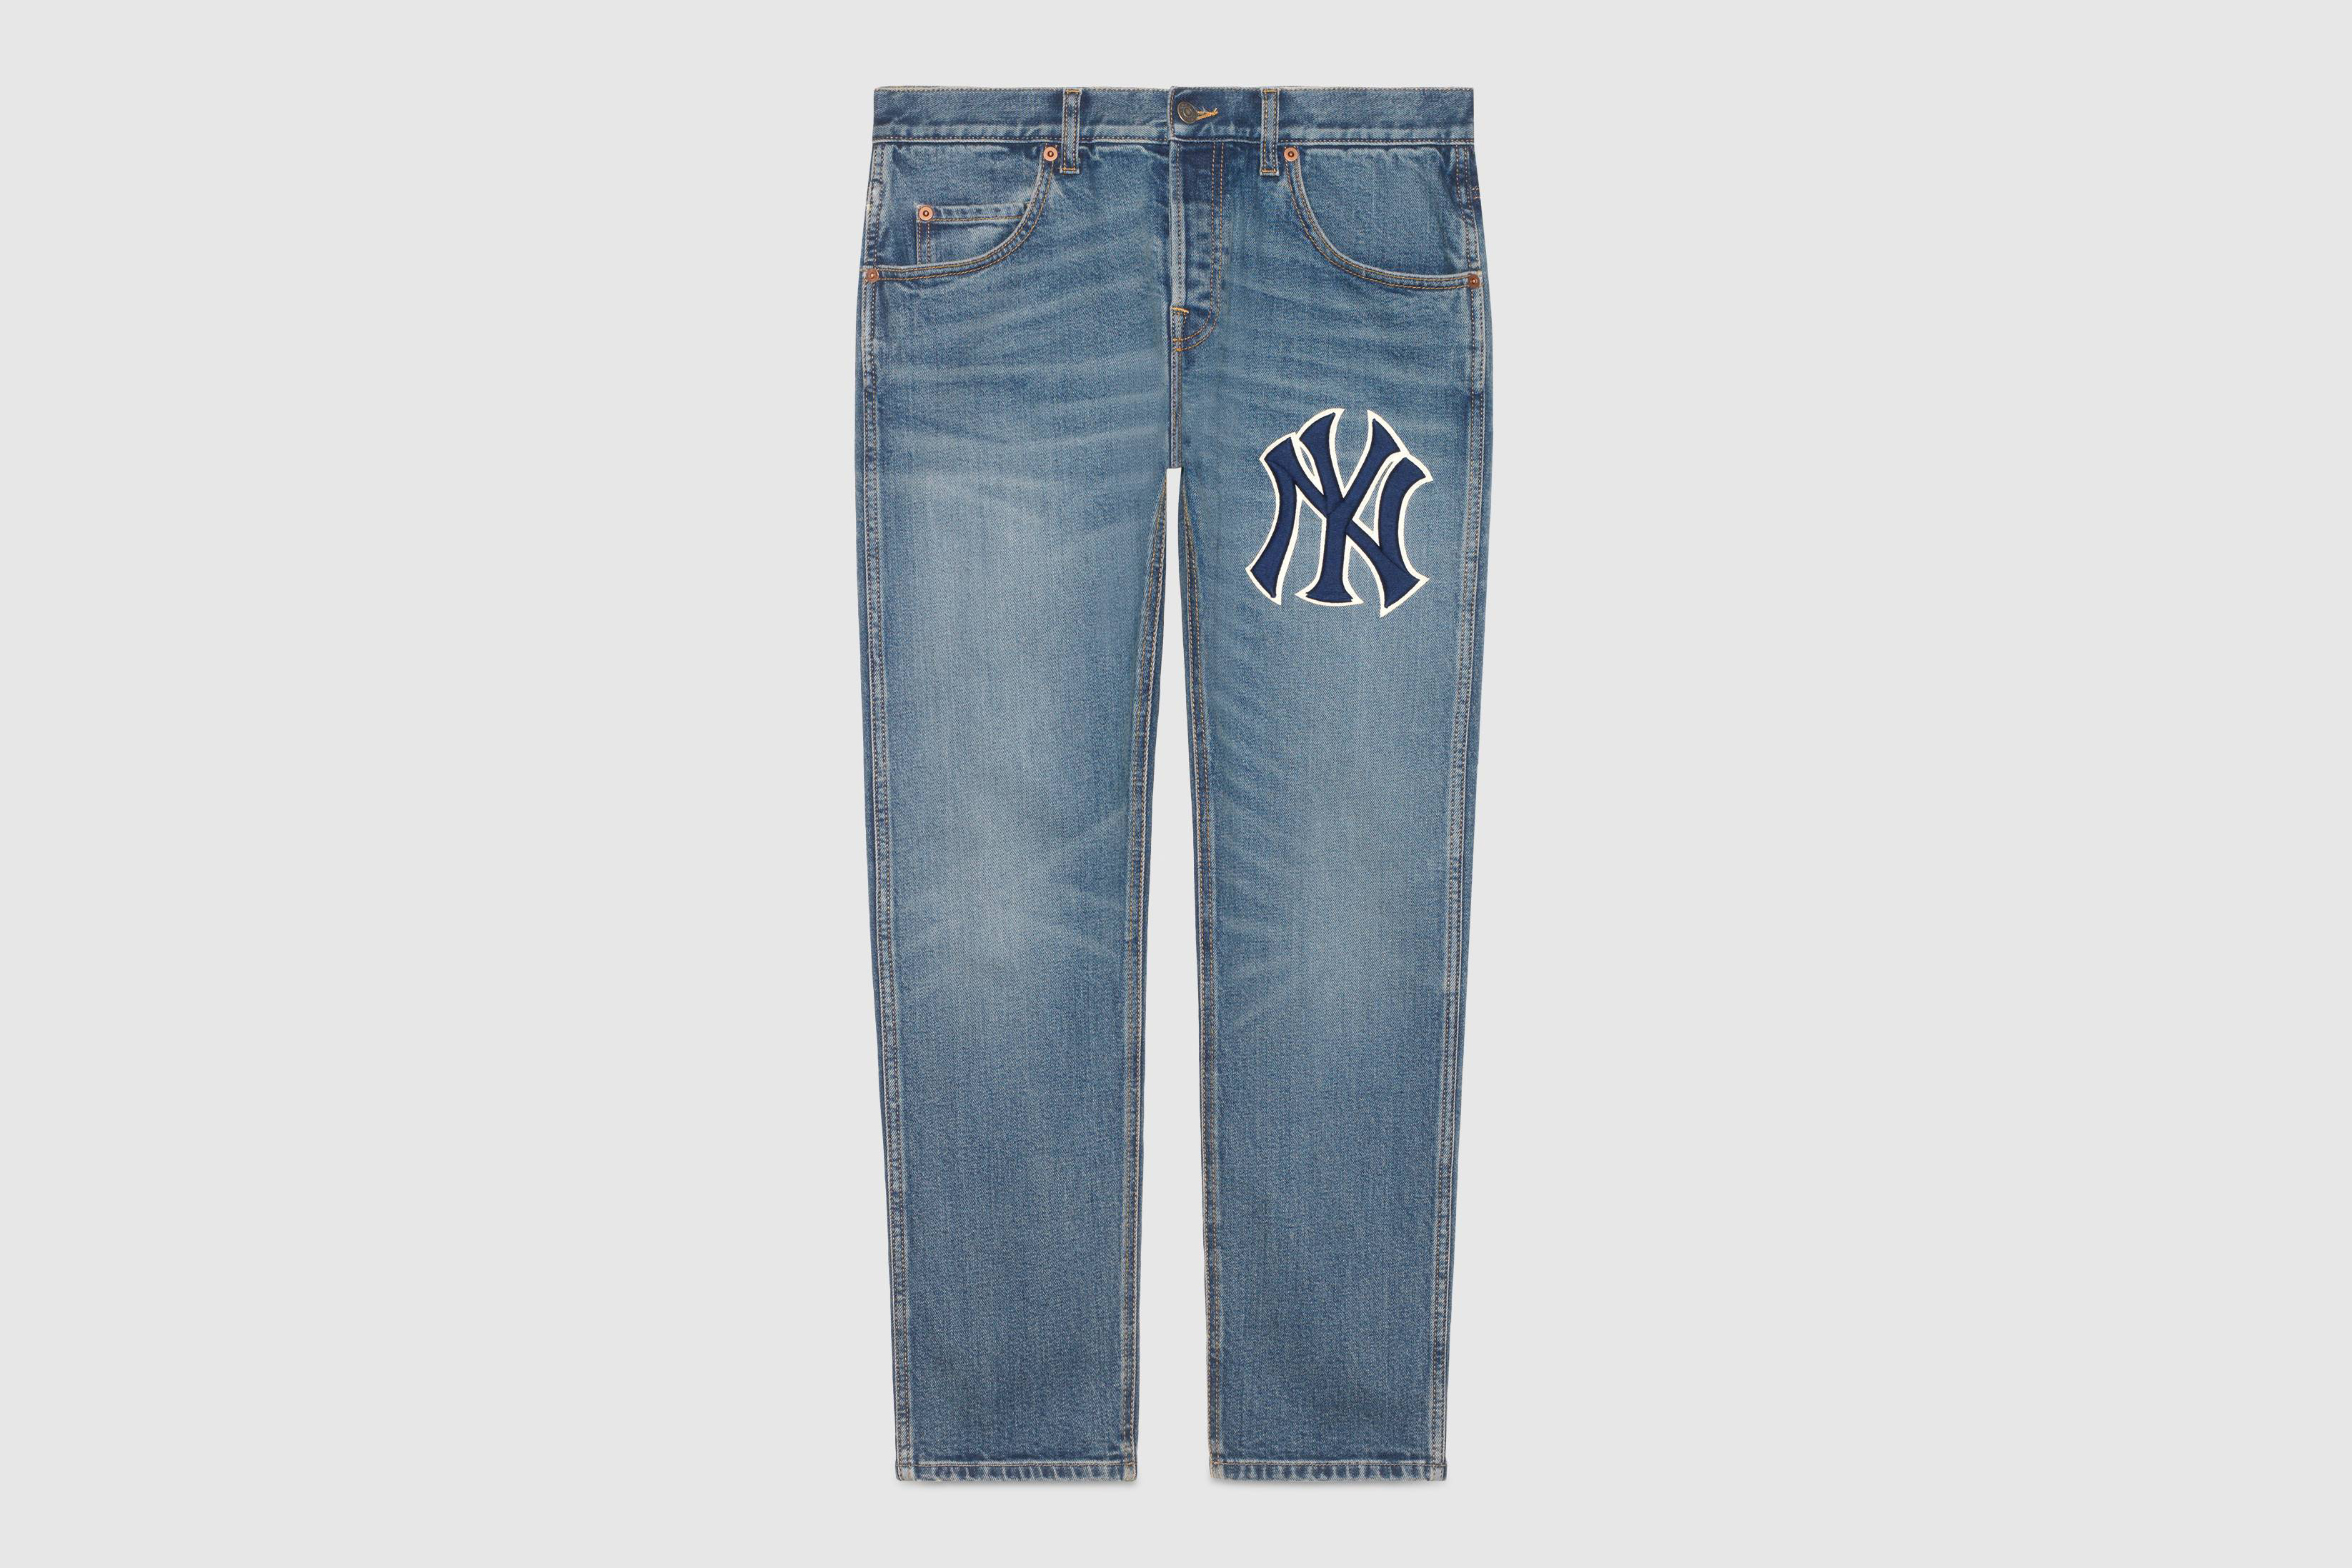 6386a188a Following up their first team up, Gucci and unexpected collaborator New  York Yankees came together on a new capsule for Fall/Winter 2018.